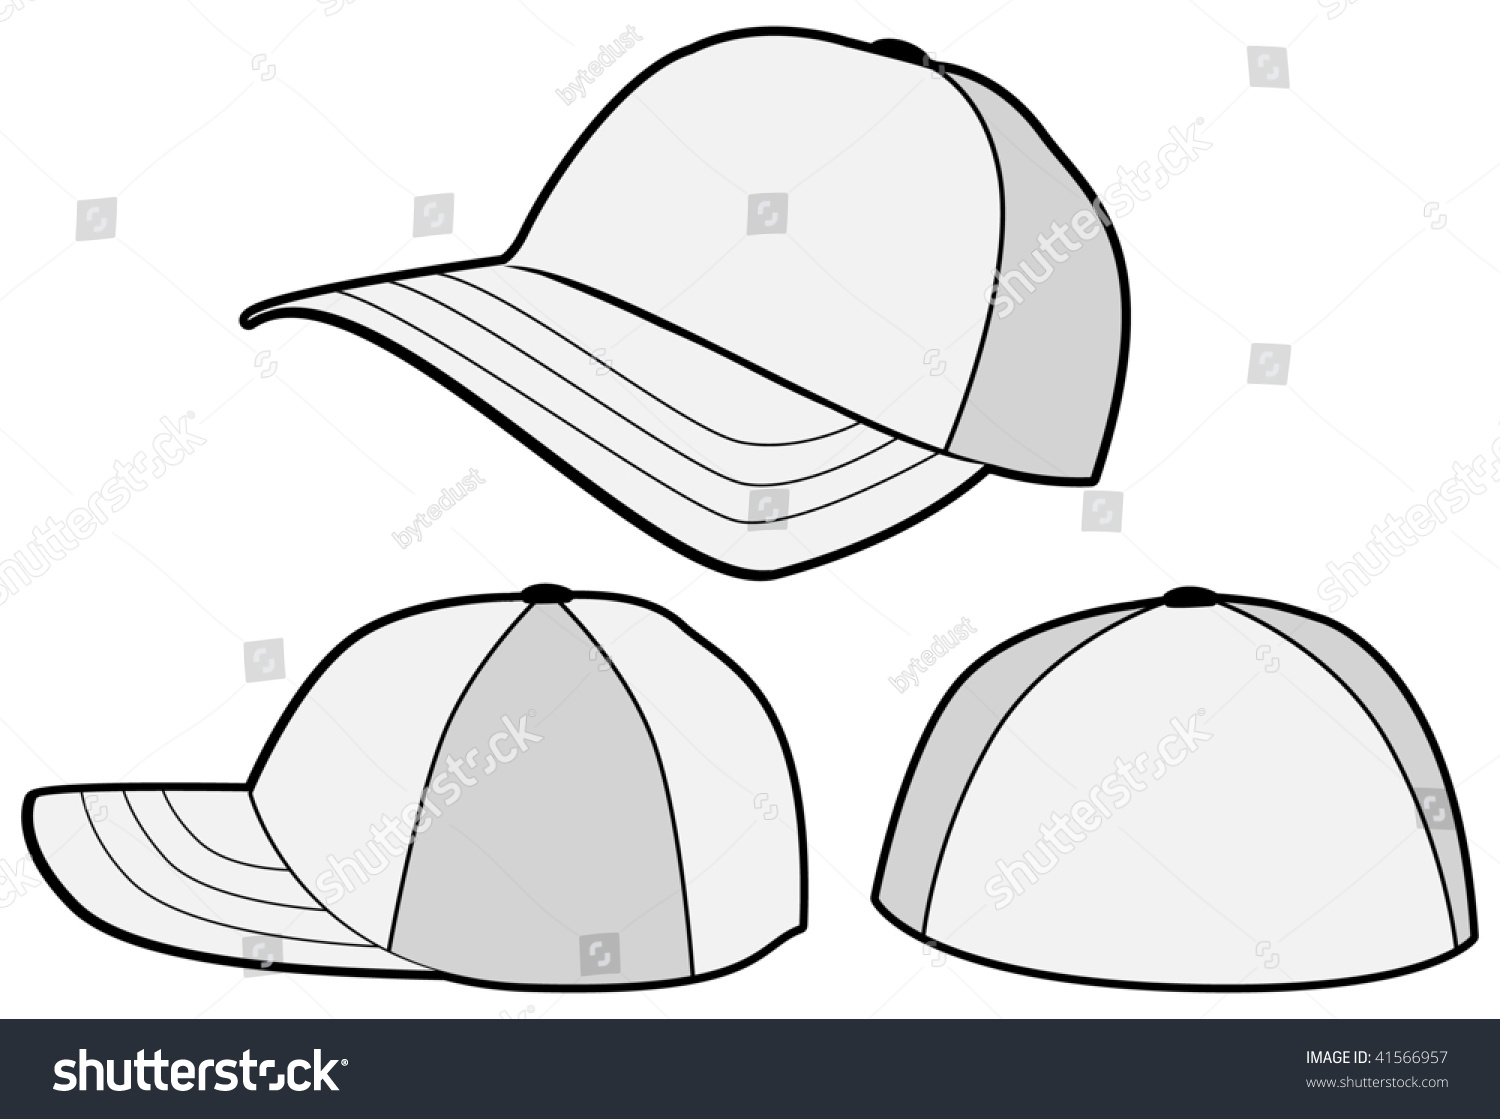 fdaf1c01bf1 Vector template of a baseball hat or cap. All objects and details are  isolated. Colors and white background color are easy to adjust customize.  Stock Photo